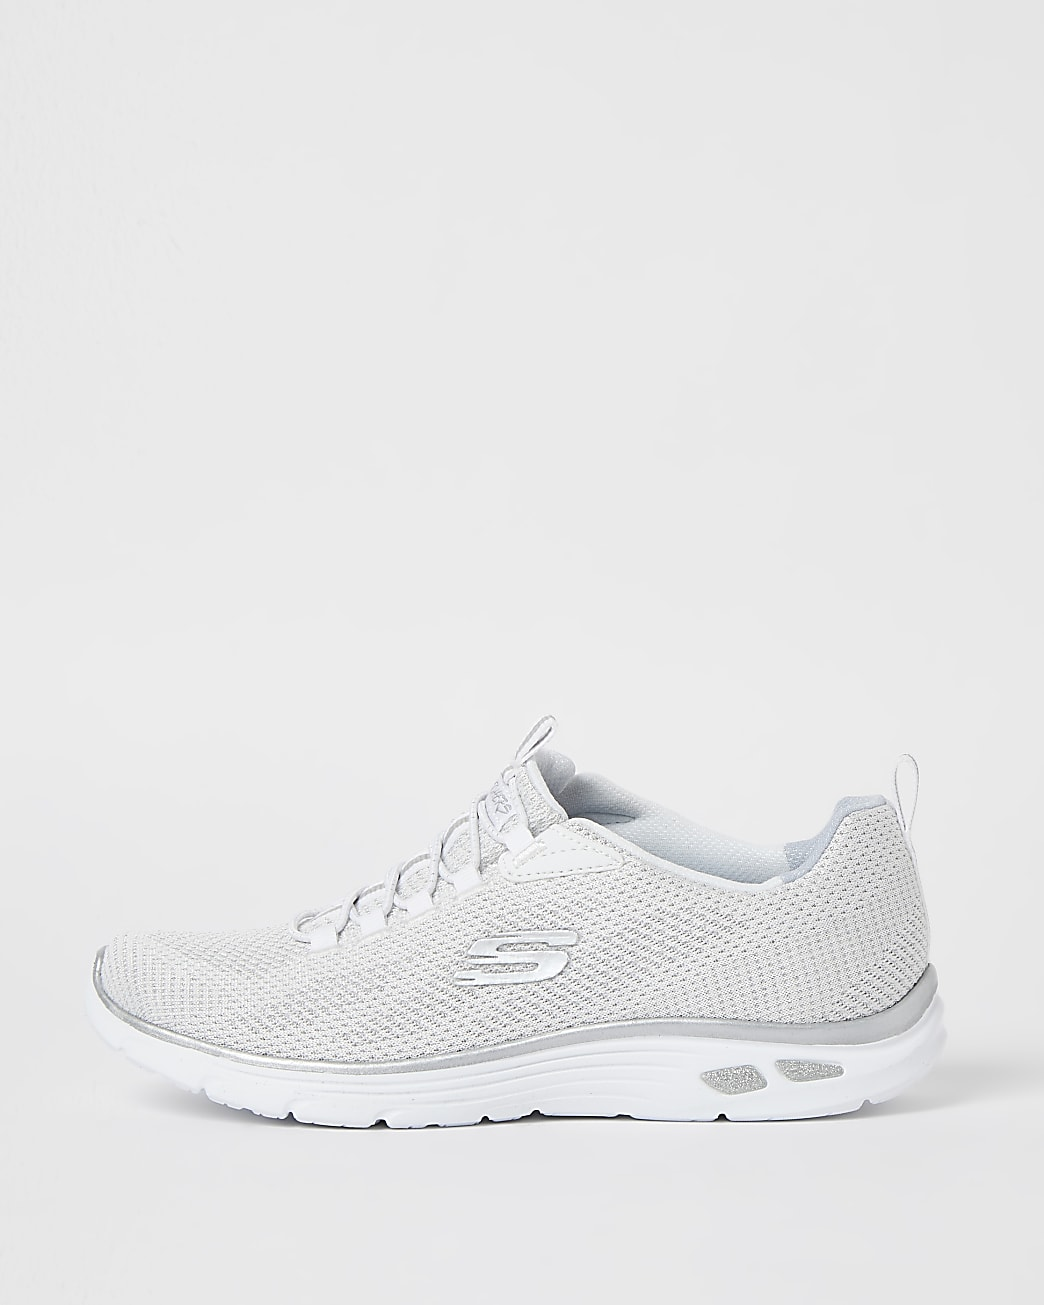 Skechers white lace up trainers